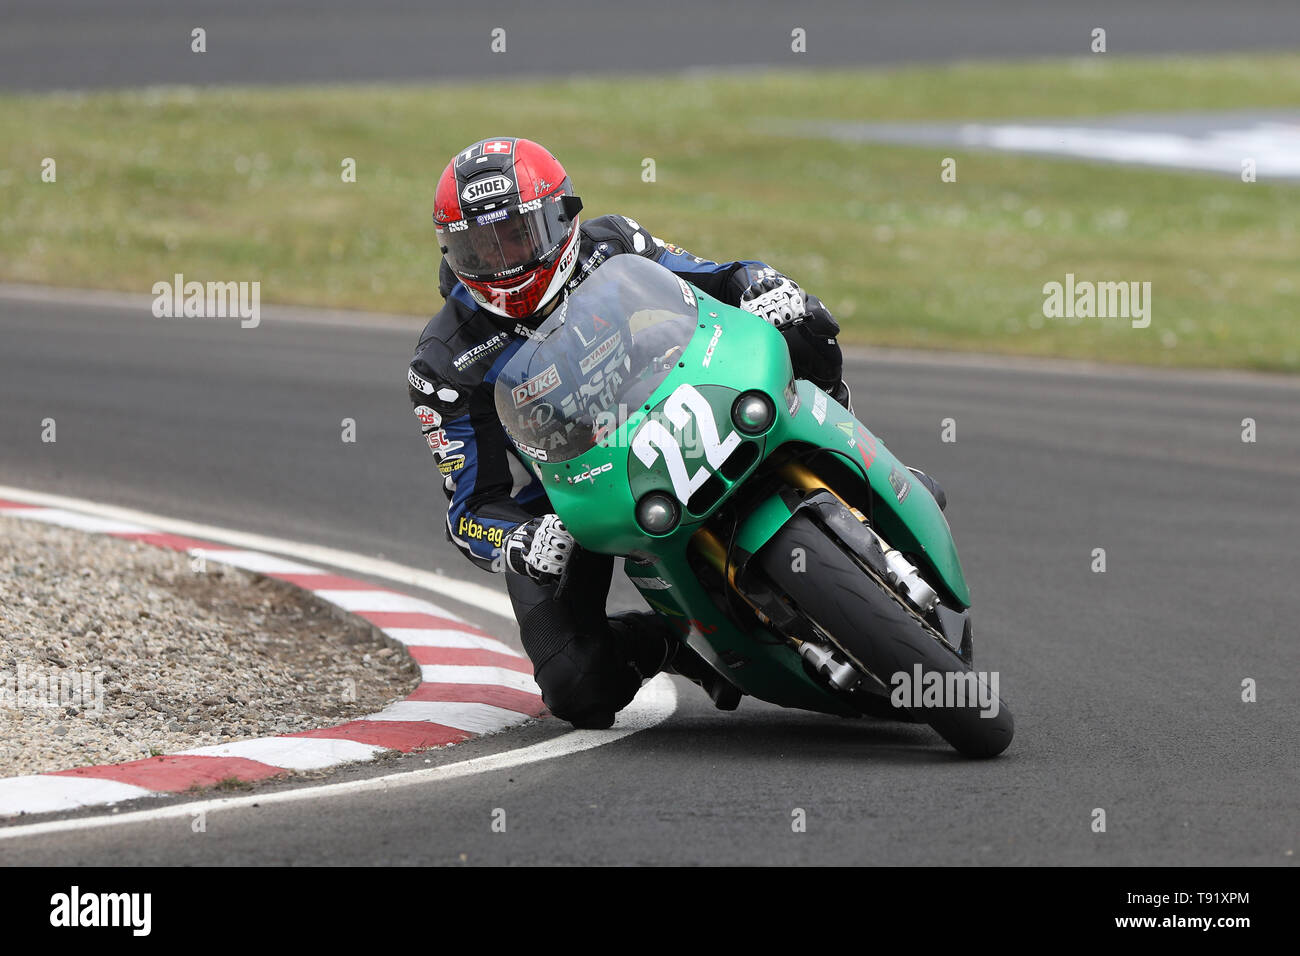 Portrush, Northern Ireland. 16th May, 2019. International North West 200 Motorcycle road racing, Thursday practice and evening racing; Liechtenstein's Horst Saiger was 6th fastest on the ILR/Mark Coverdale Paton during the SuperSport qualifying session Credit: Action Plus Sports/Alamy Live News - Stock Image